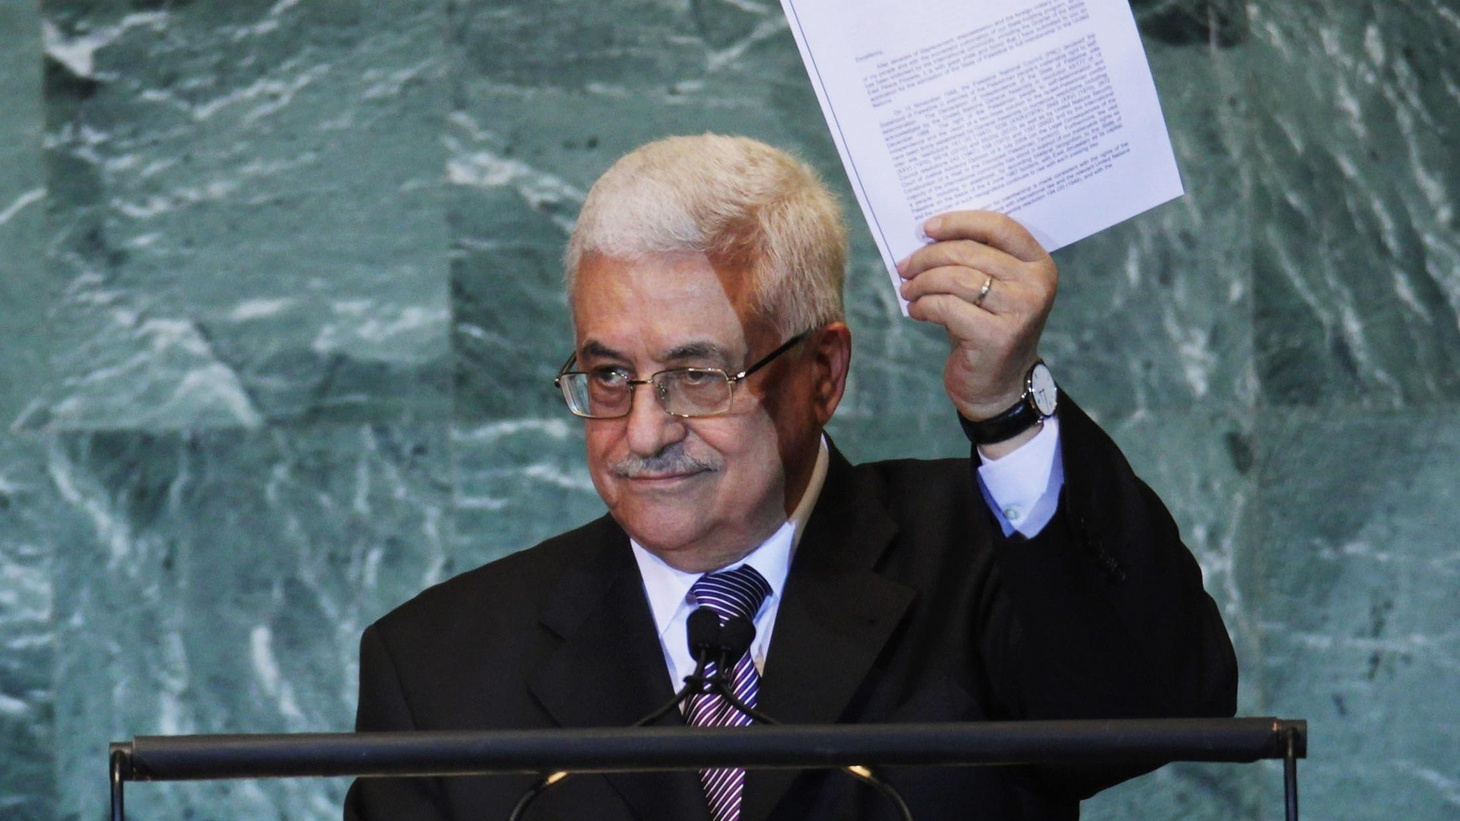 Palestinian leader Mahmoud Abbas has demanded membership in the United Nations. We hear Israel's reaction and what it means for US diplomacy at the UN and in the Middle East.